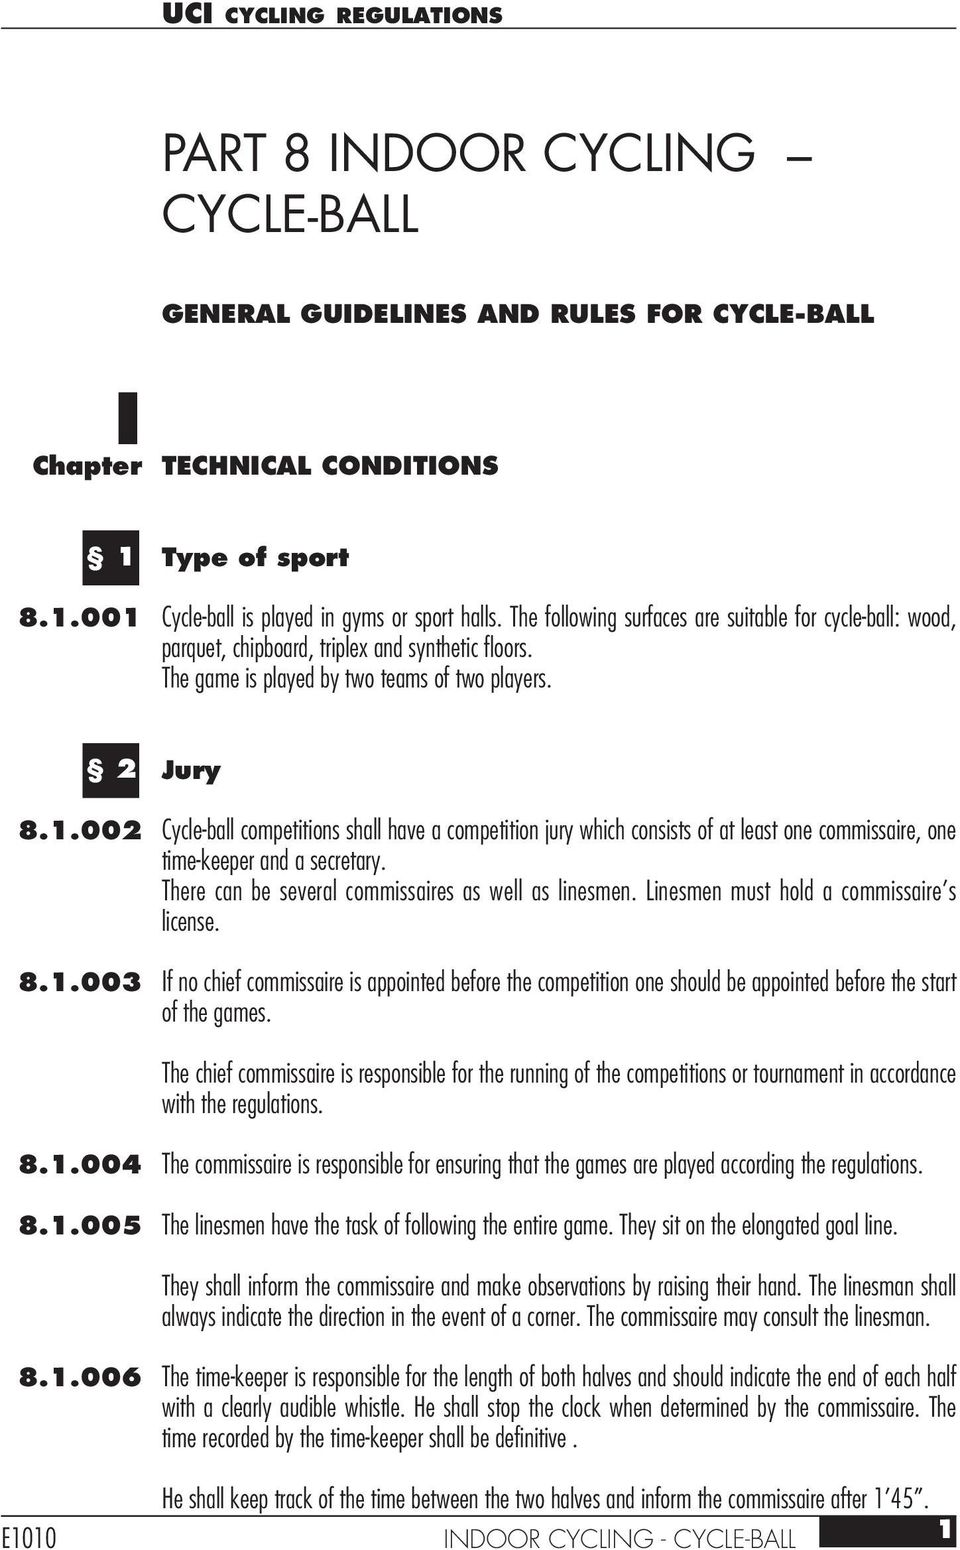 002 Cycle-ball competitions shall have a competition jury which consists of at least one commissaire, one time-keeper and a secretary. There can be several commissaires as well as linesmen.